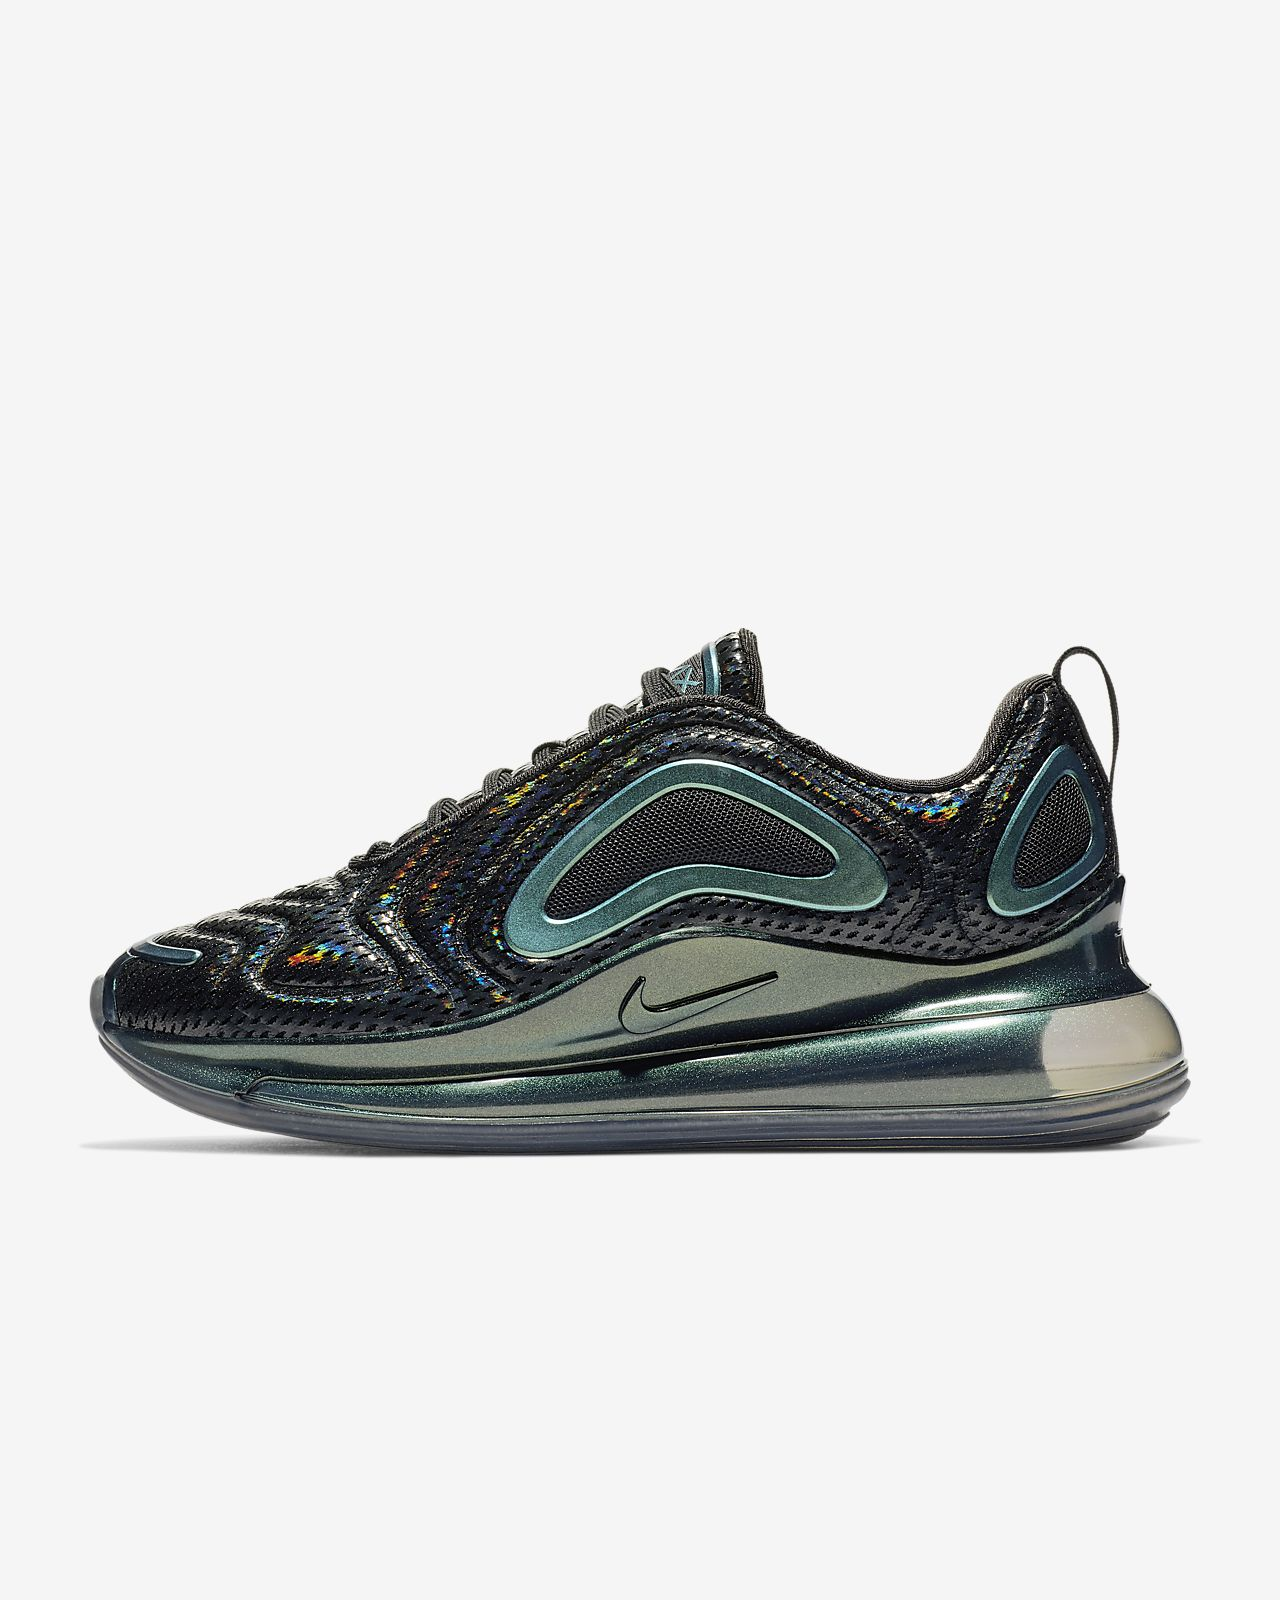 Durable Nike Air Max 720 Royal Blue Navy Blue Men's Casual